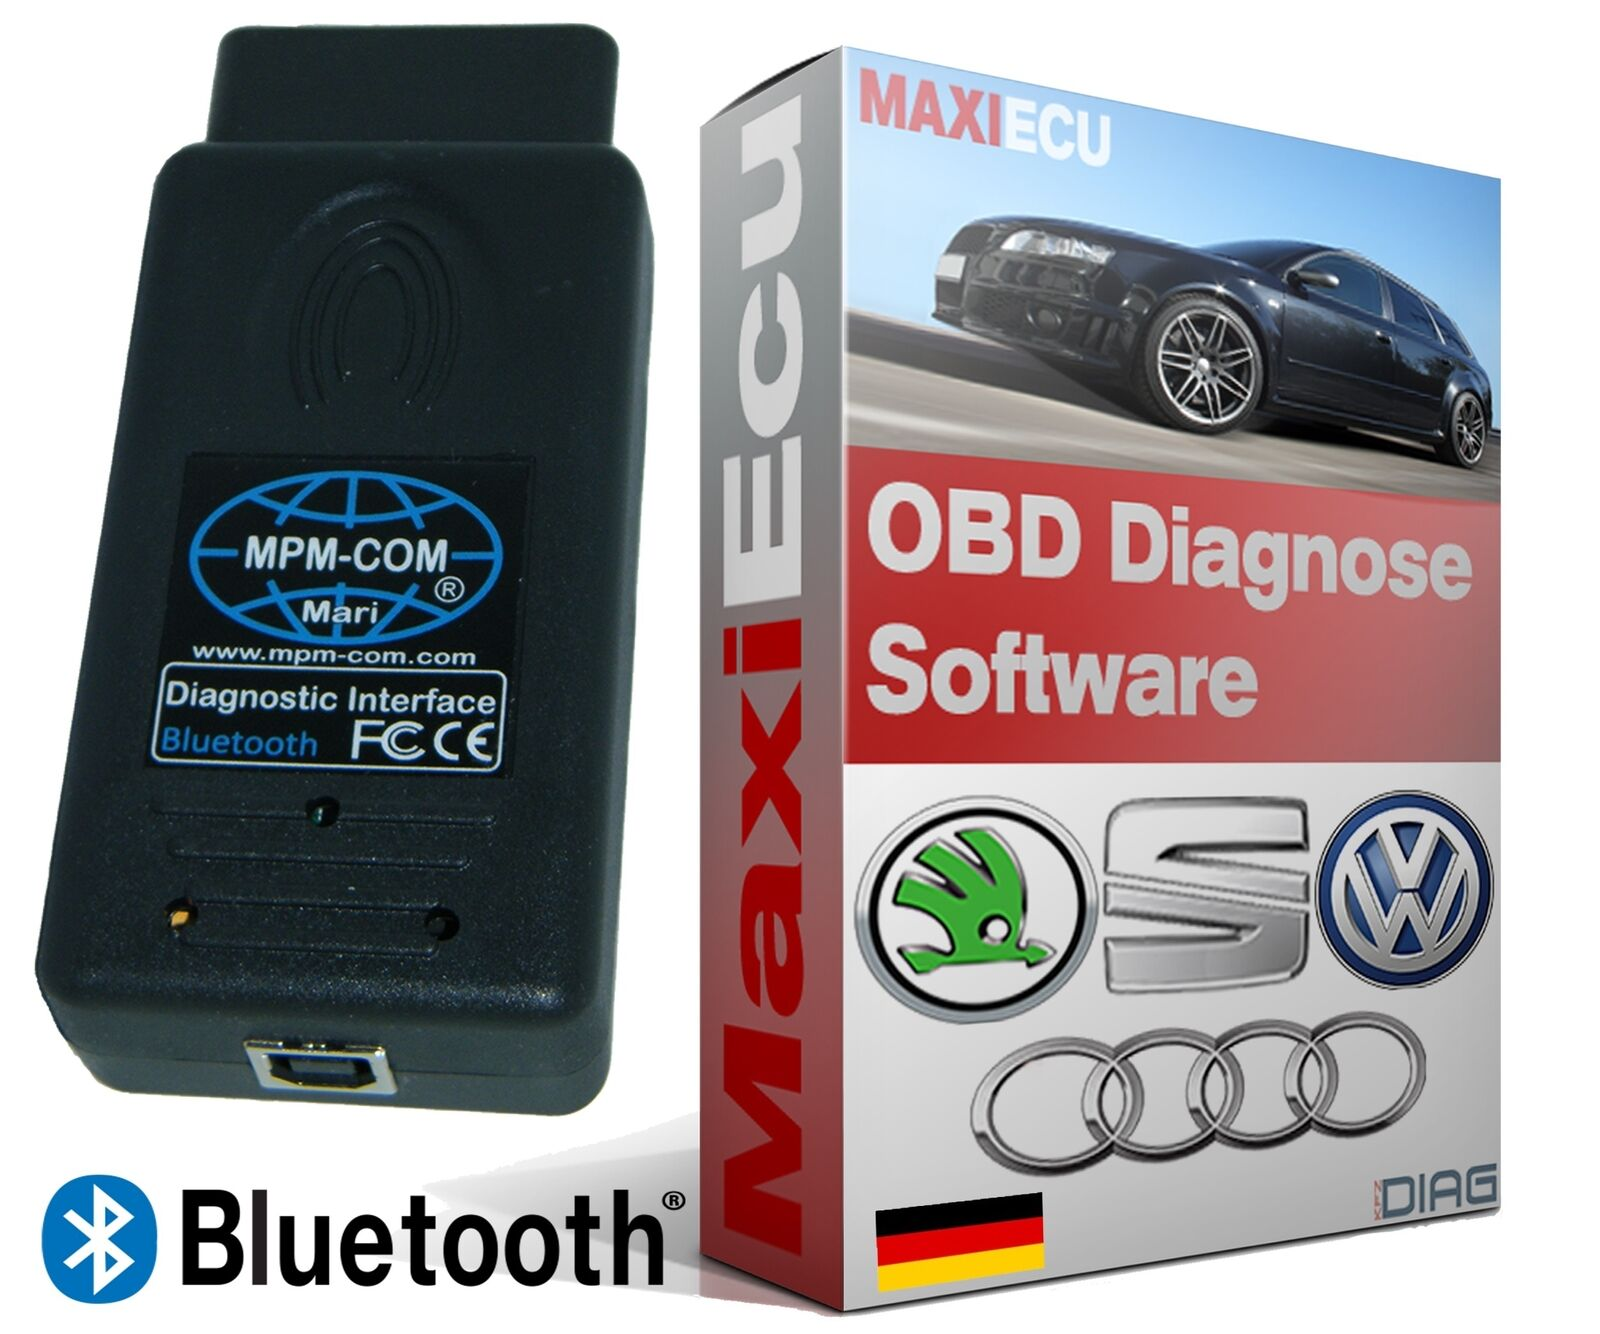 profi kfz obd diagnoseger t mpm com mit bluetooth f r fast. Black Bedroom Furniture Sets. Home Design Ideas